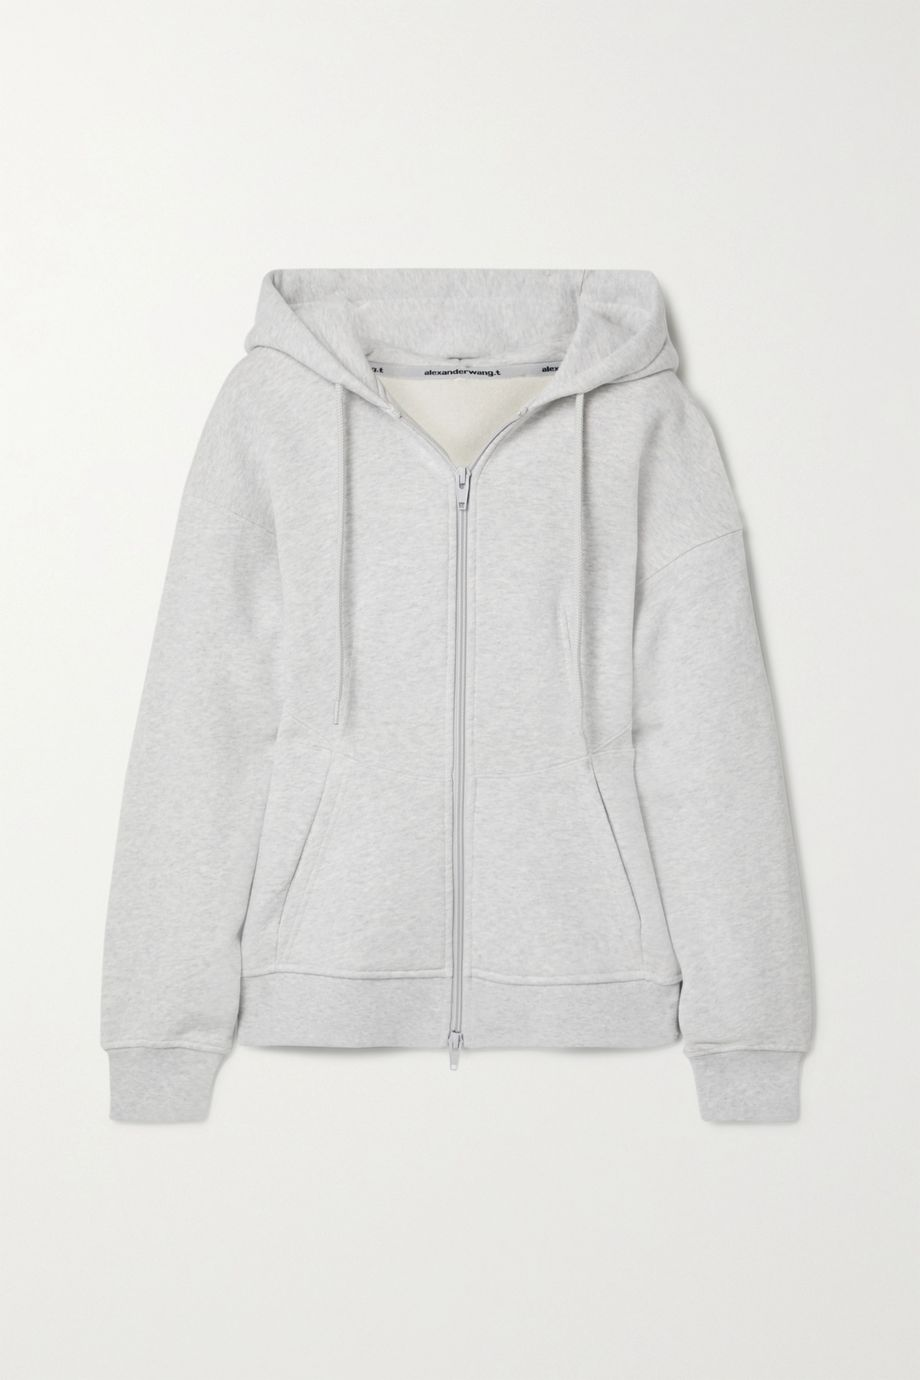 alexanderwang.t French cotton-terry hoodie